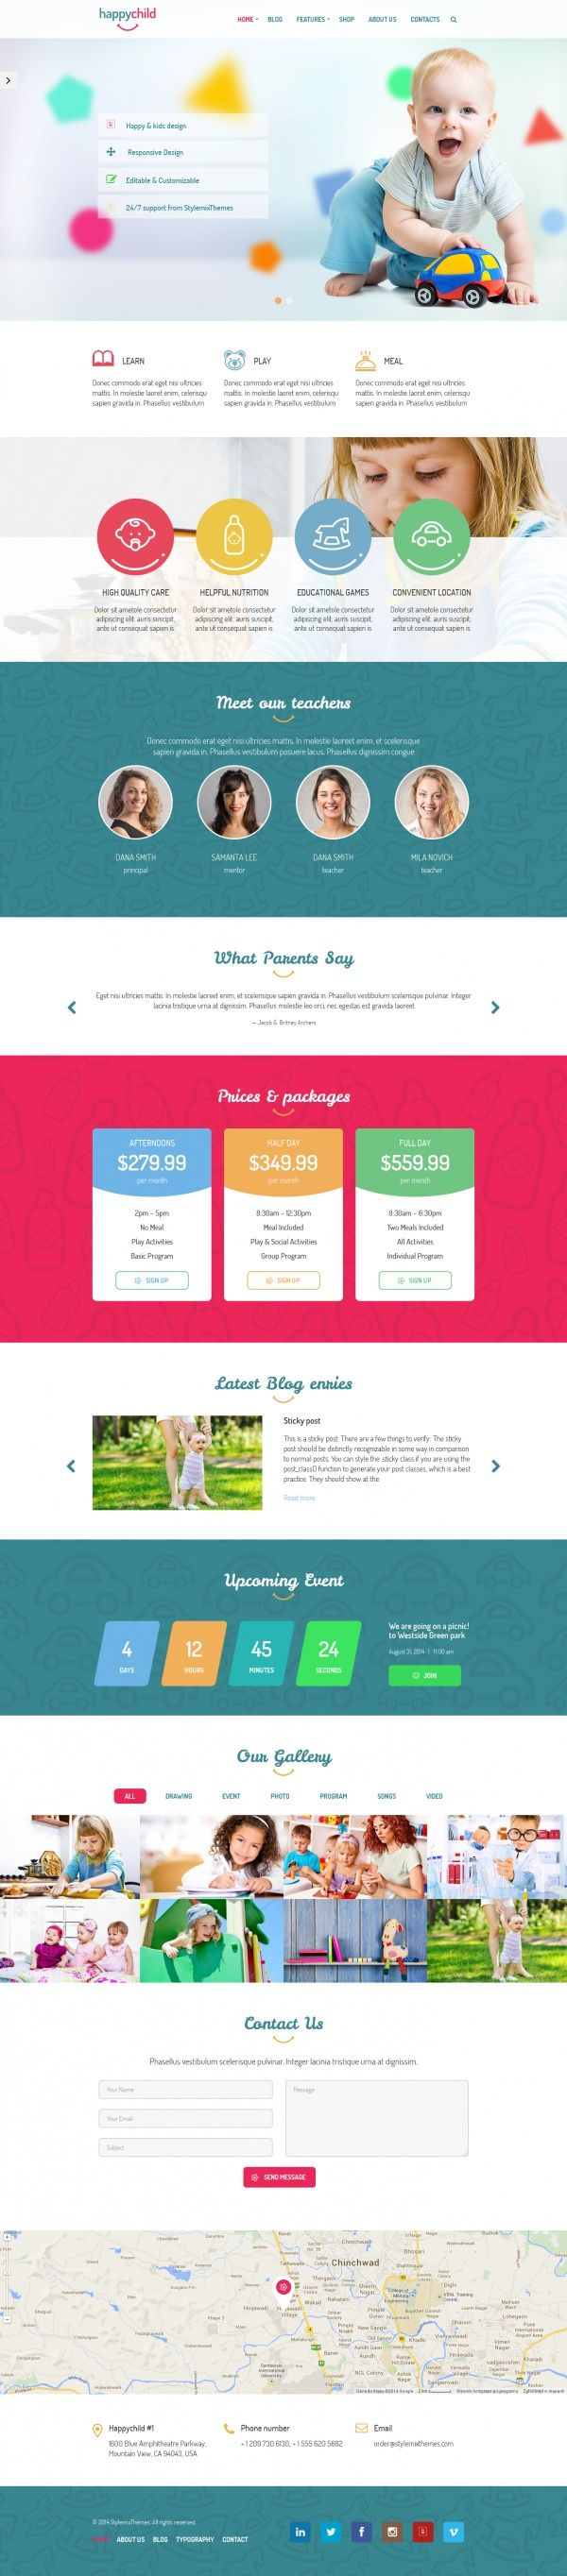 HappyChild Kids WordPress Theme